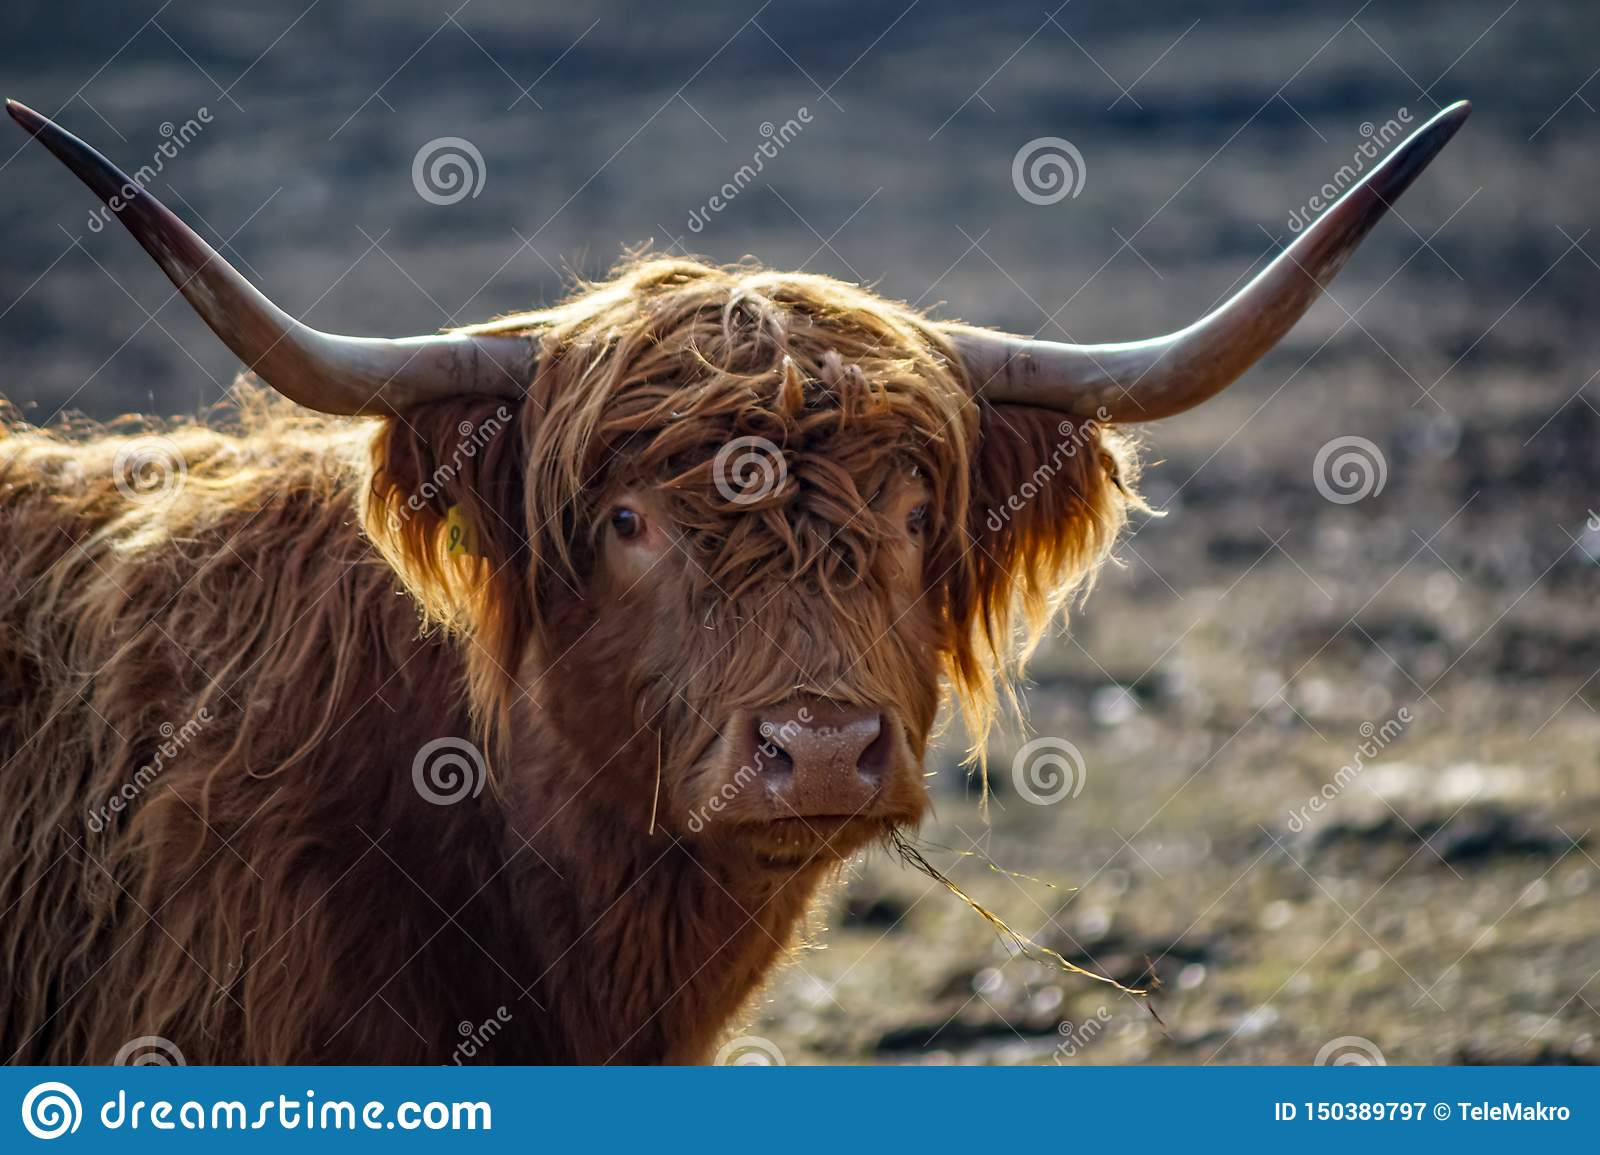 Detailed portrait of a scottish highland cattle